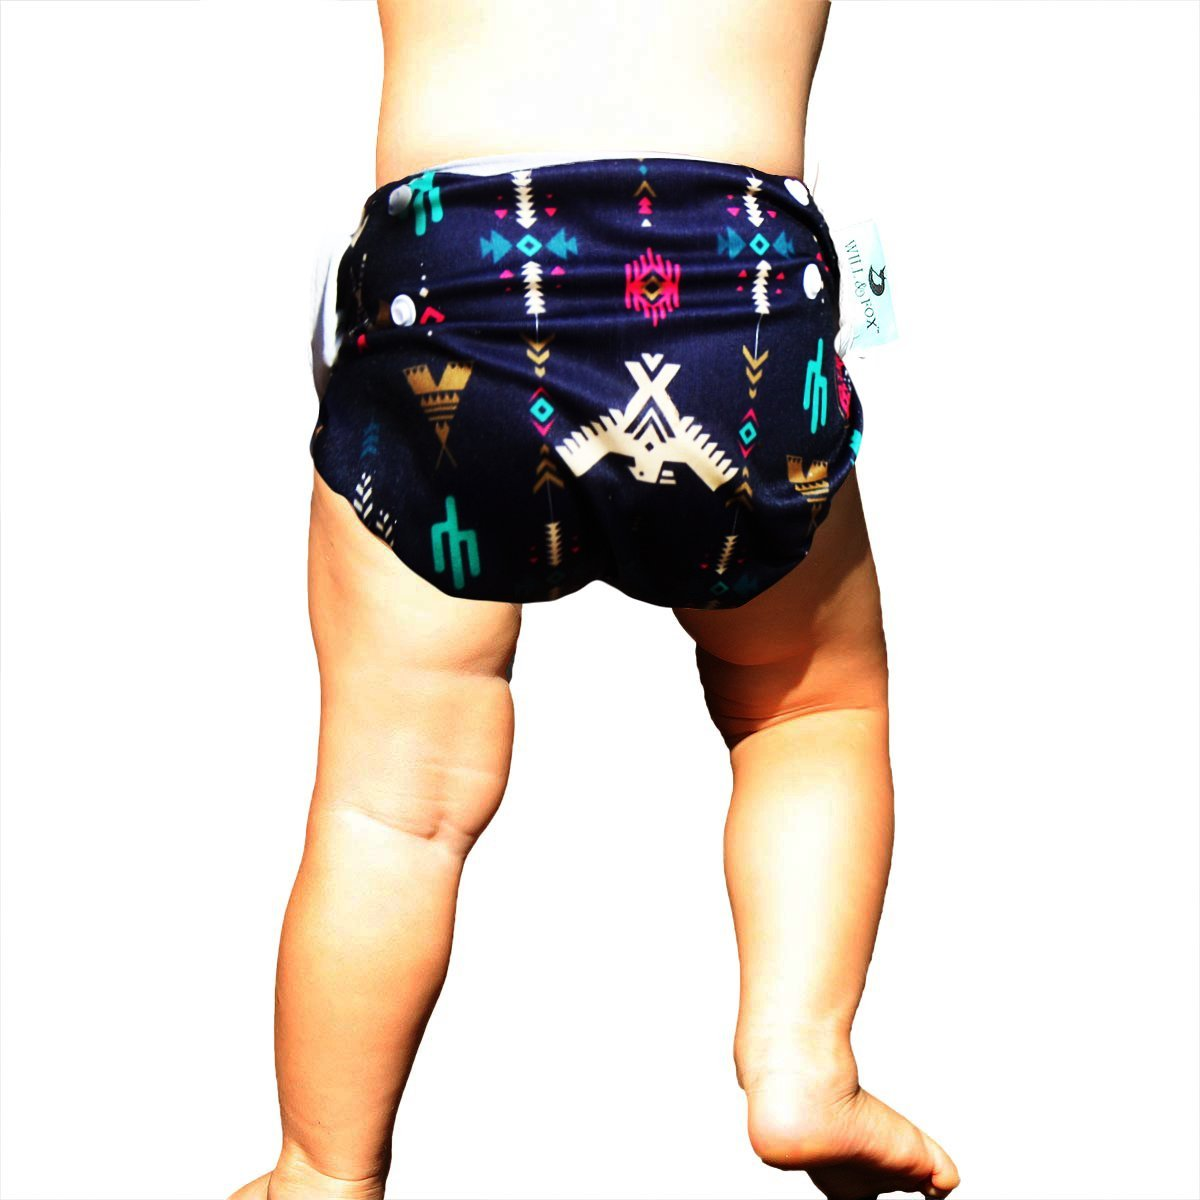 Will & Fox Babies Swim Diaper Multi-Functional Adjusts FIT Age 0-3 YRS Girls & Boys Styles